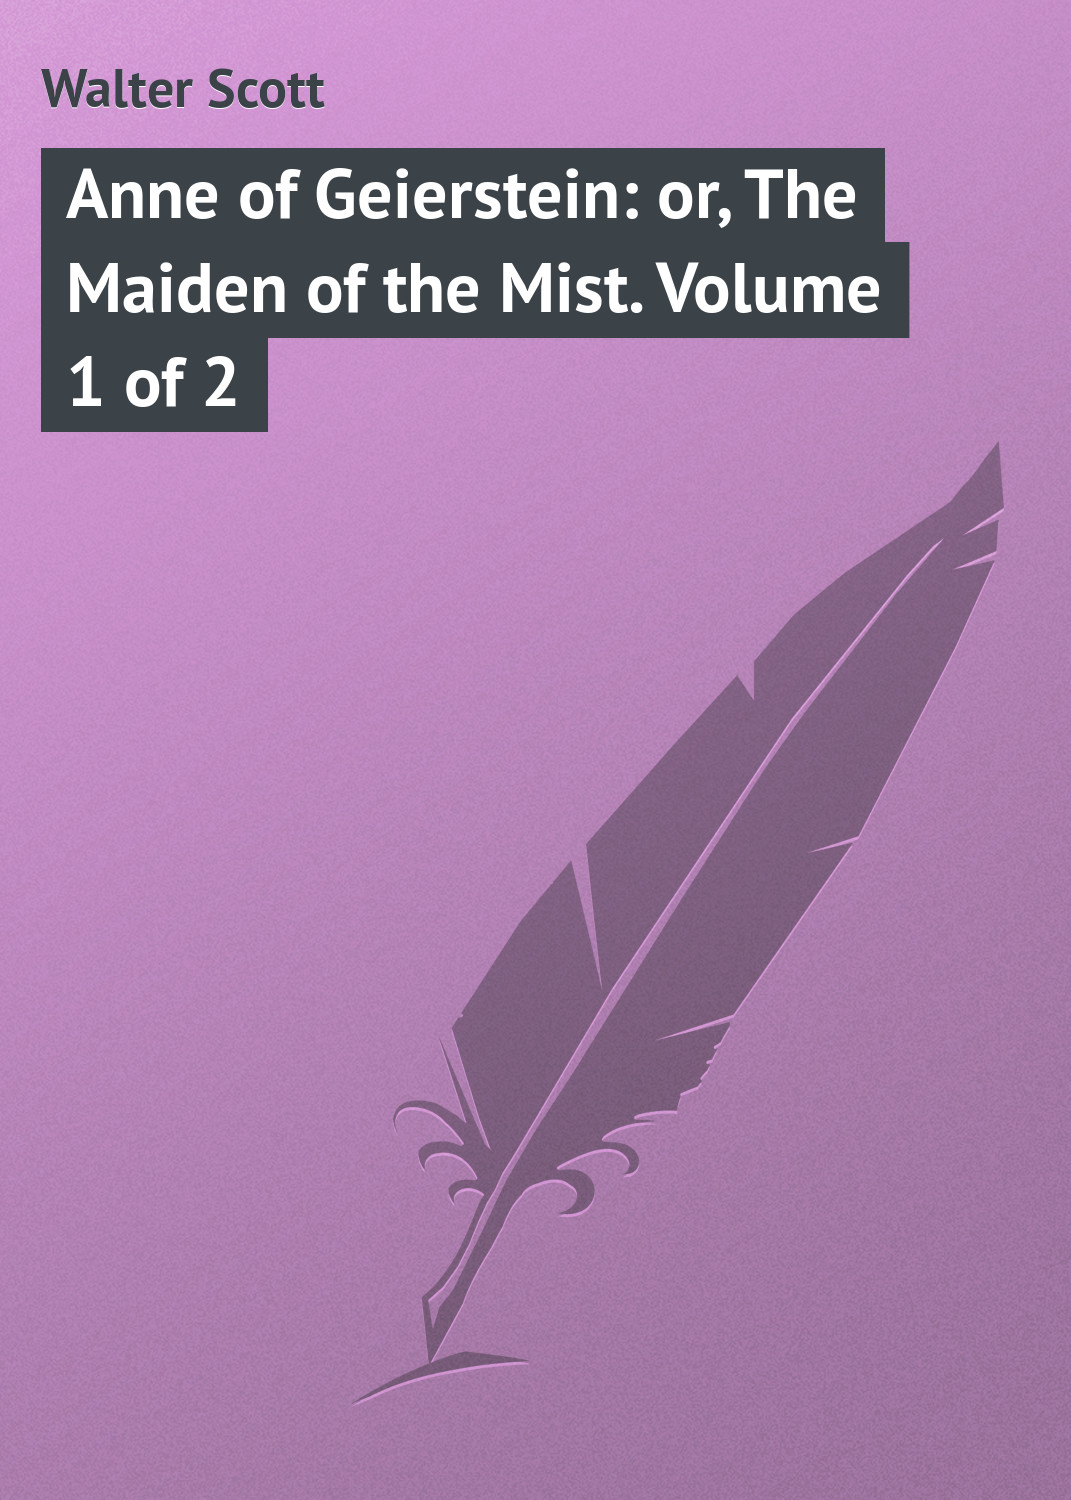 Вальтер Скотт Anne of Geierstein: or, The Maiden of the Mist. Volume 1 of 2 earth 2 volume 2 the tower of fate